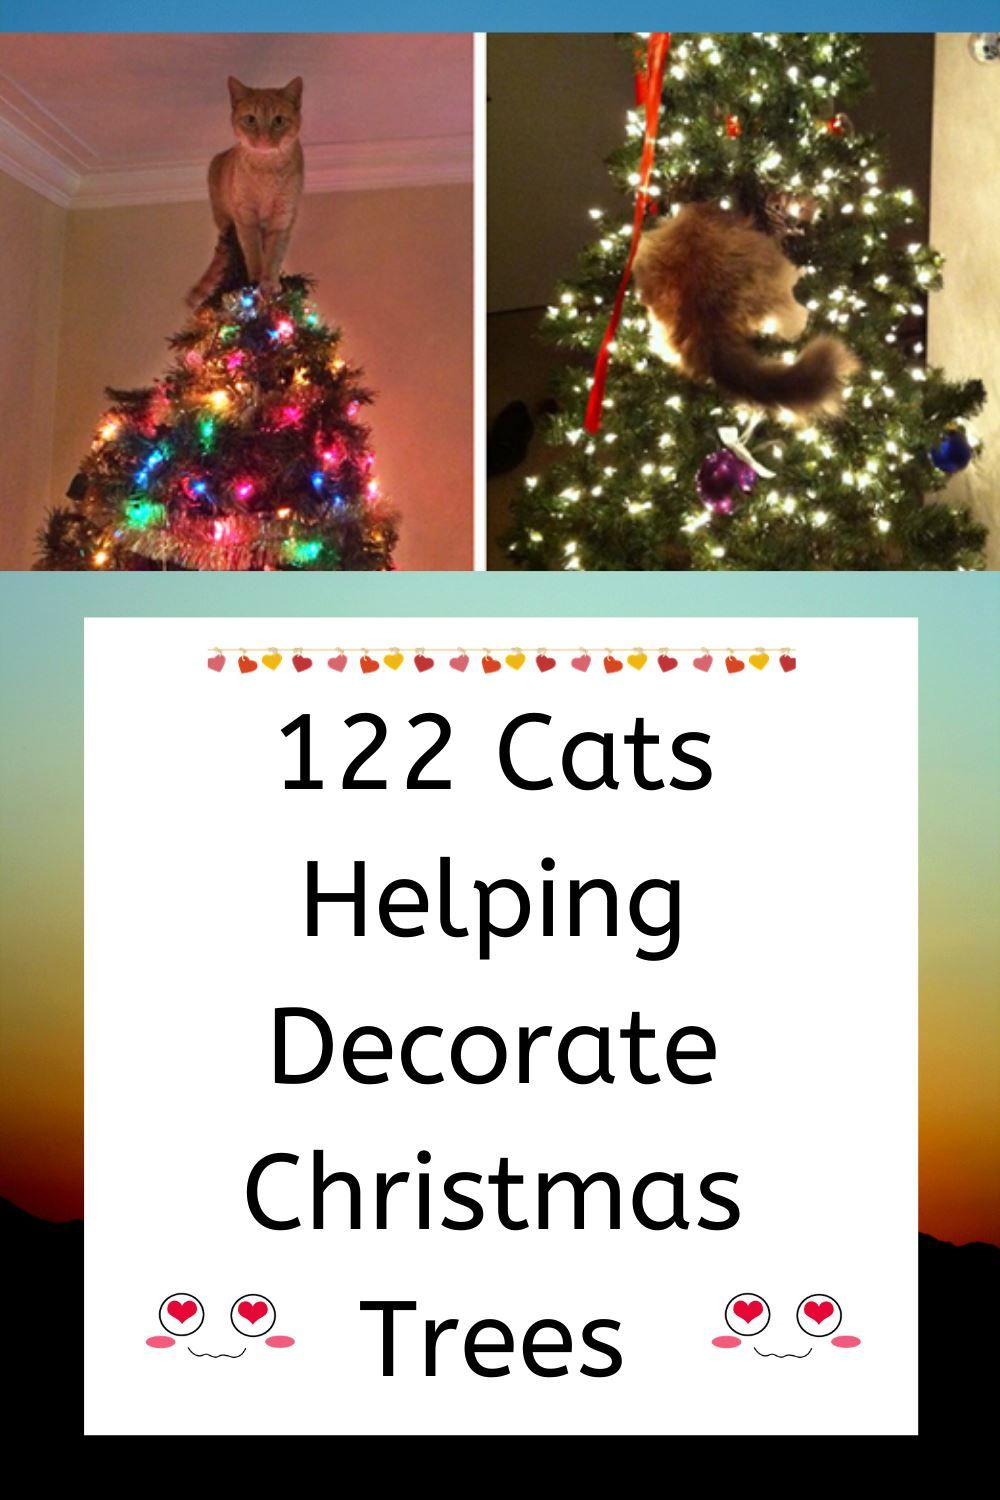 122 Cats Helping Decorate Christmas Trees In 2020 Christmas Tree Decorations Christmas Tree Cat Christmas Tree